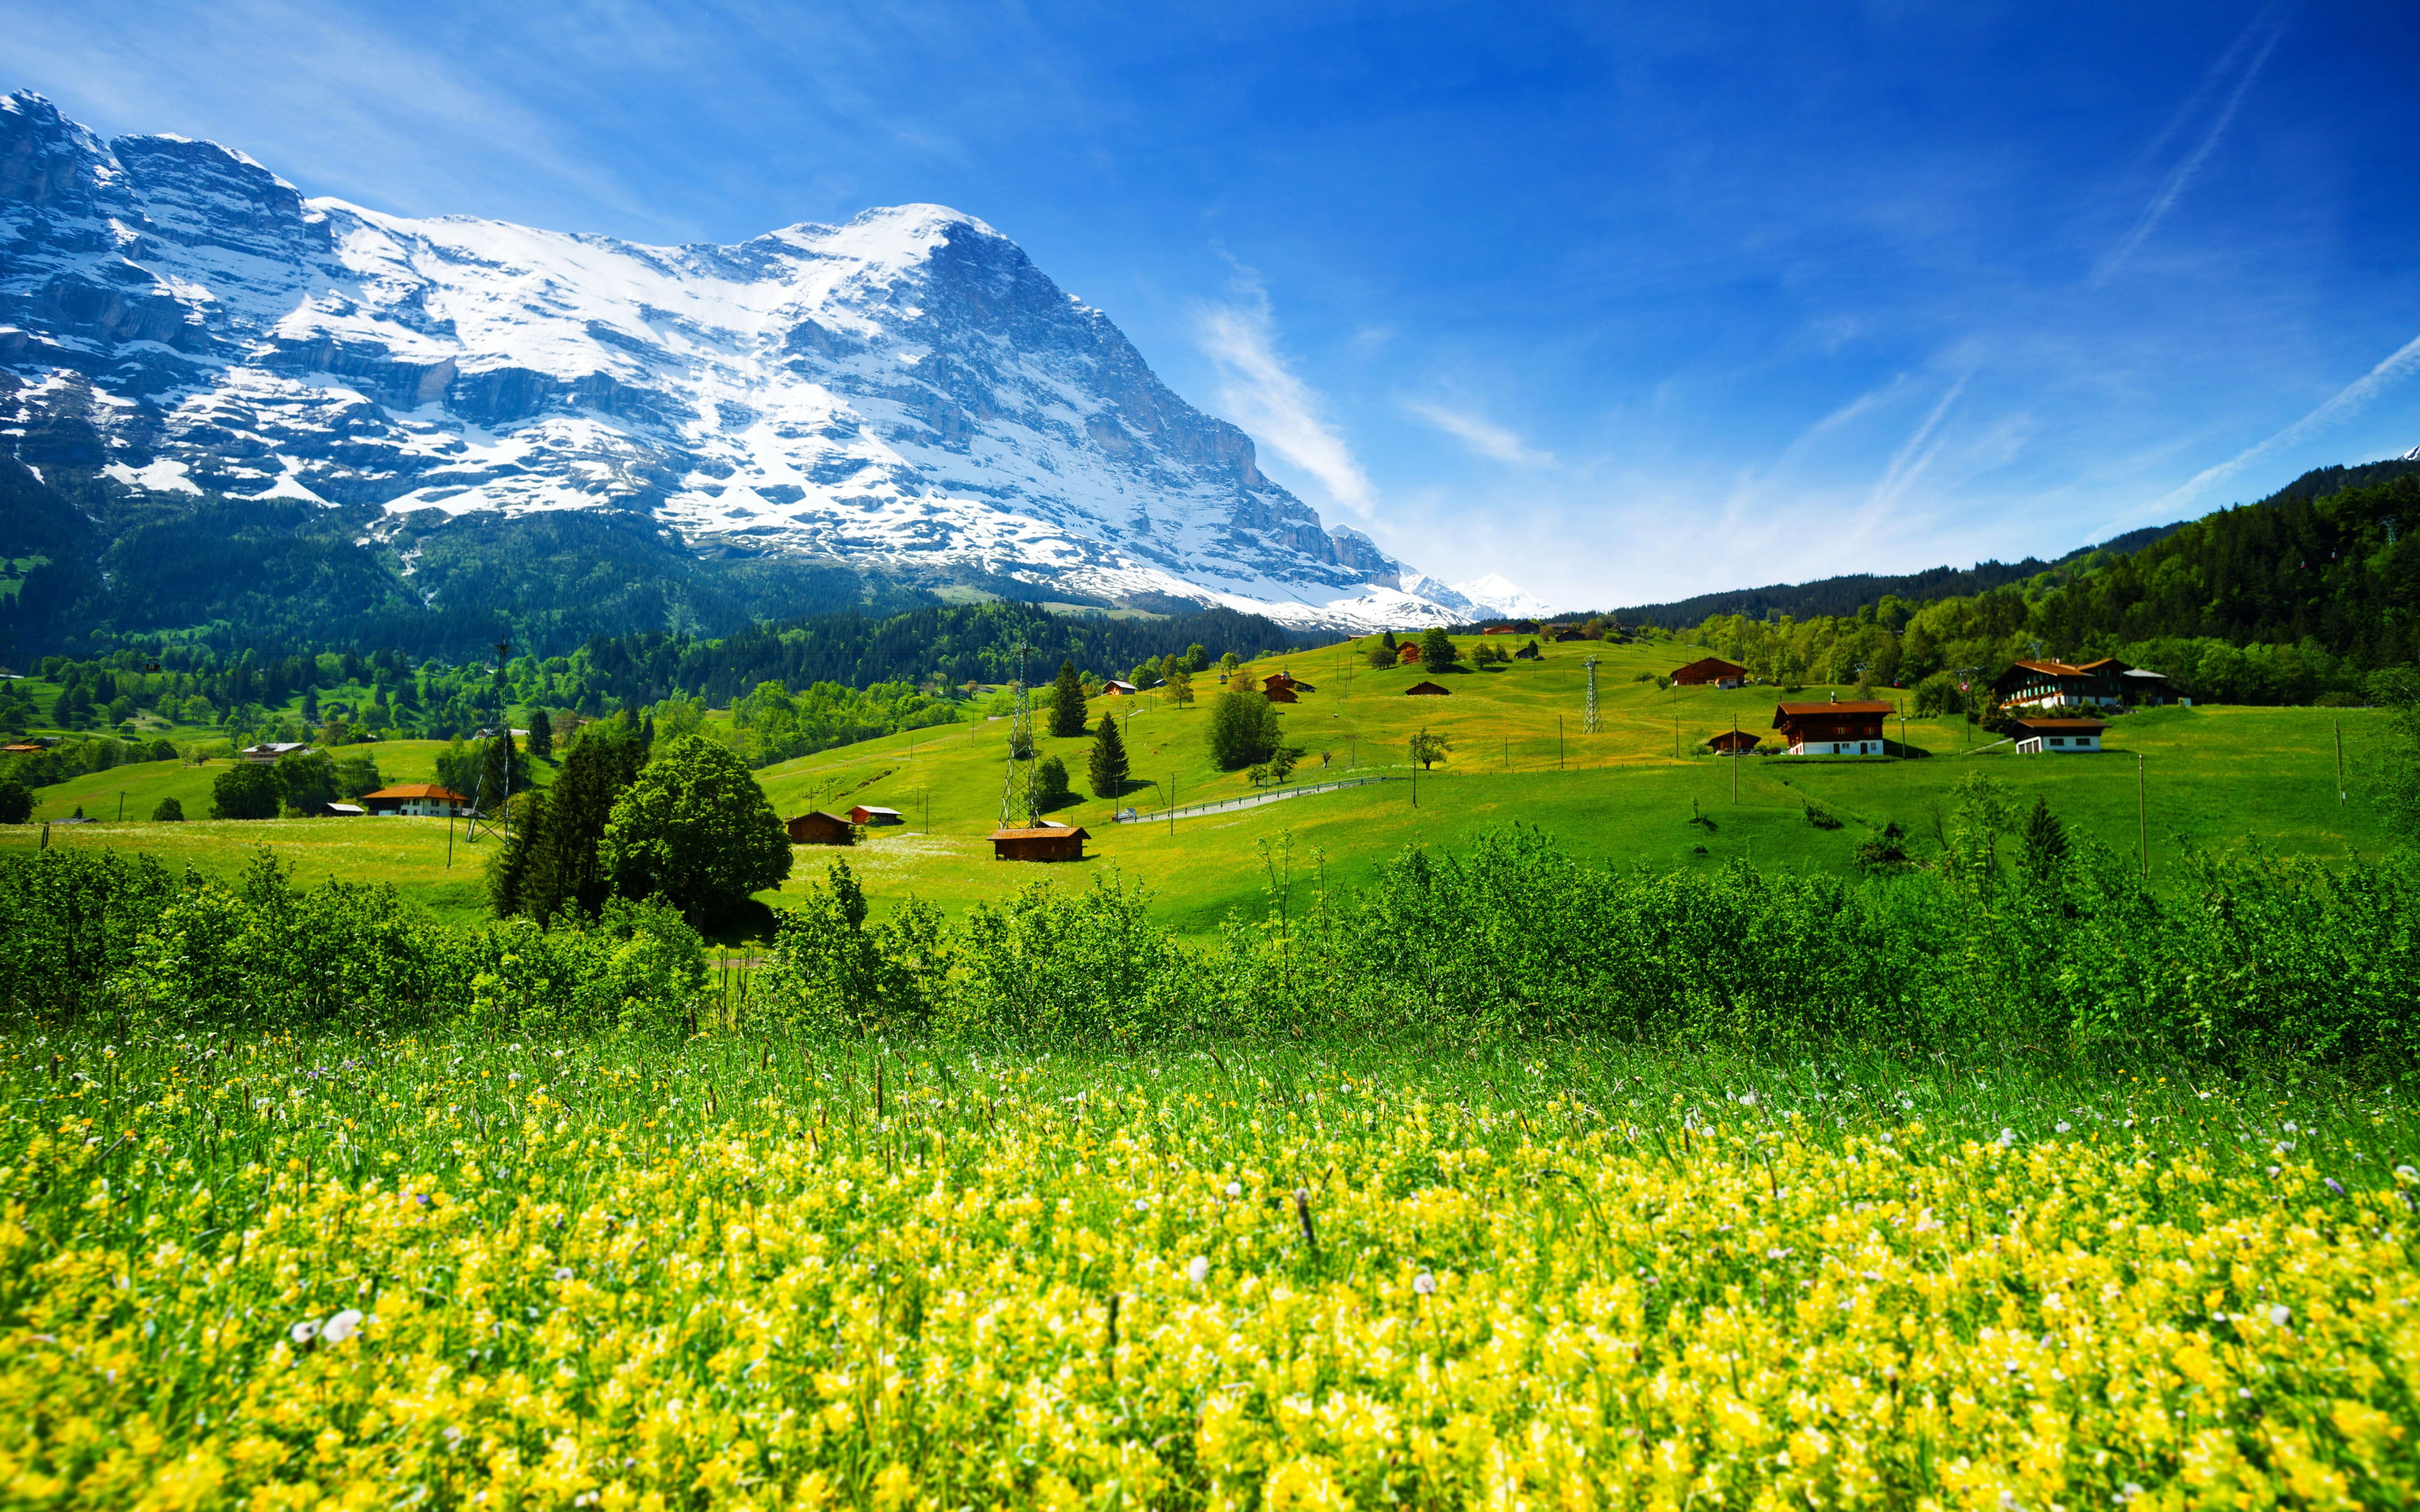 Spring Landscape Nature Switzerland Meadow With Yellow Flowers And Green Grass Mountainous Vi In 2021 Iphone Wallpaper Mountains Landscape Landscape Photography Nature Wallpaper valley relief grass river sky